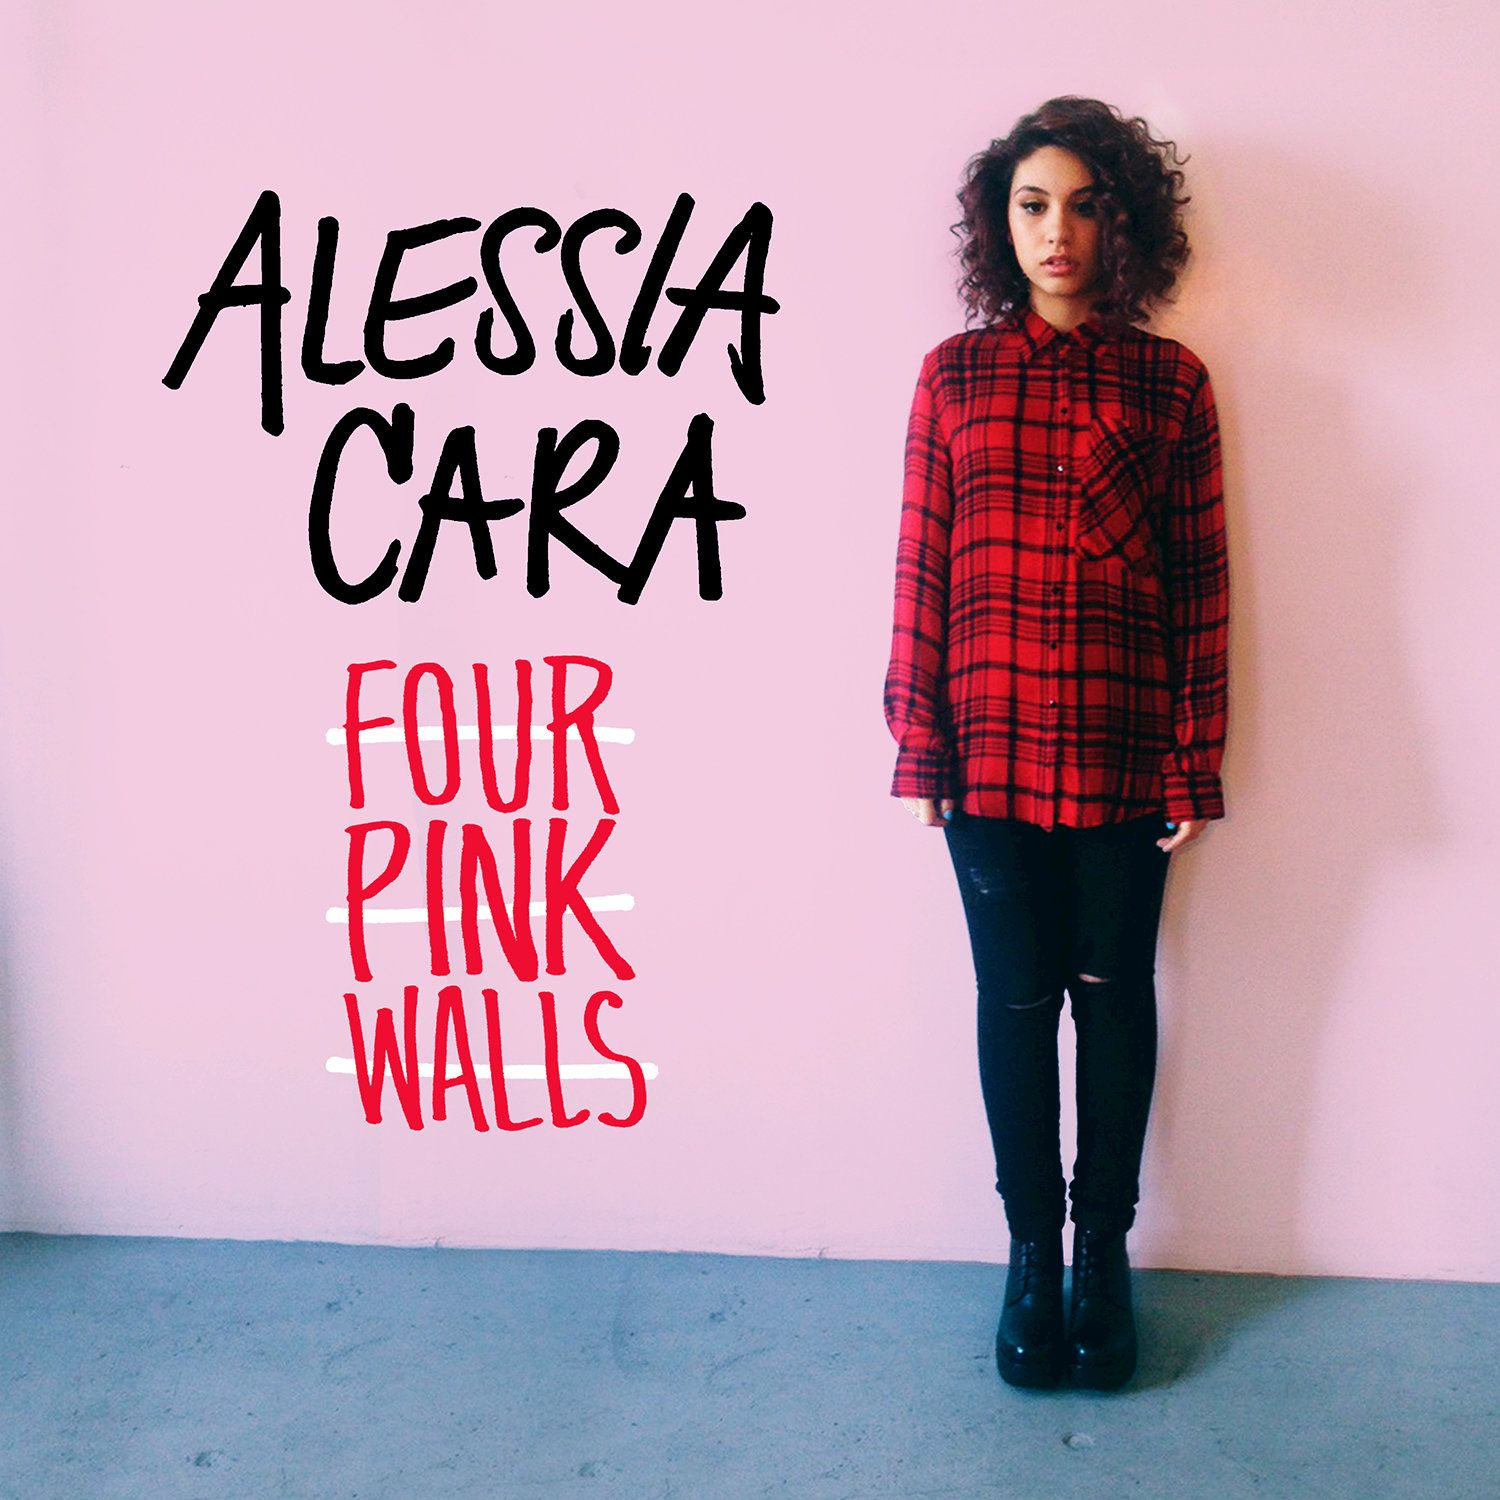 Alessia Cara - Four Pink Walls (ep) album cover